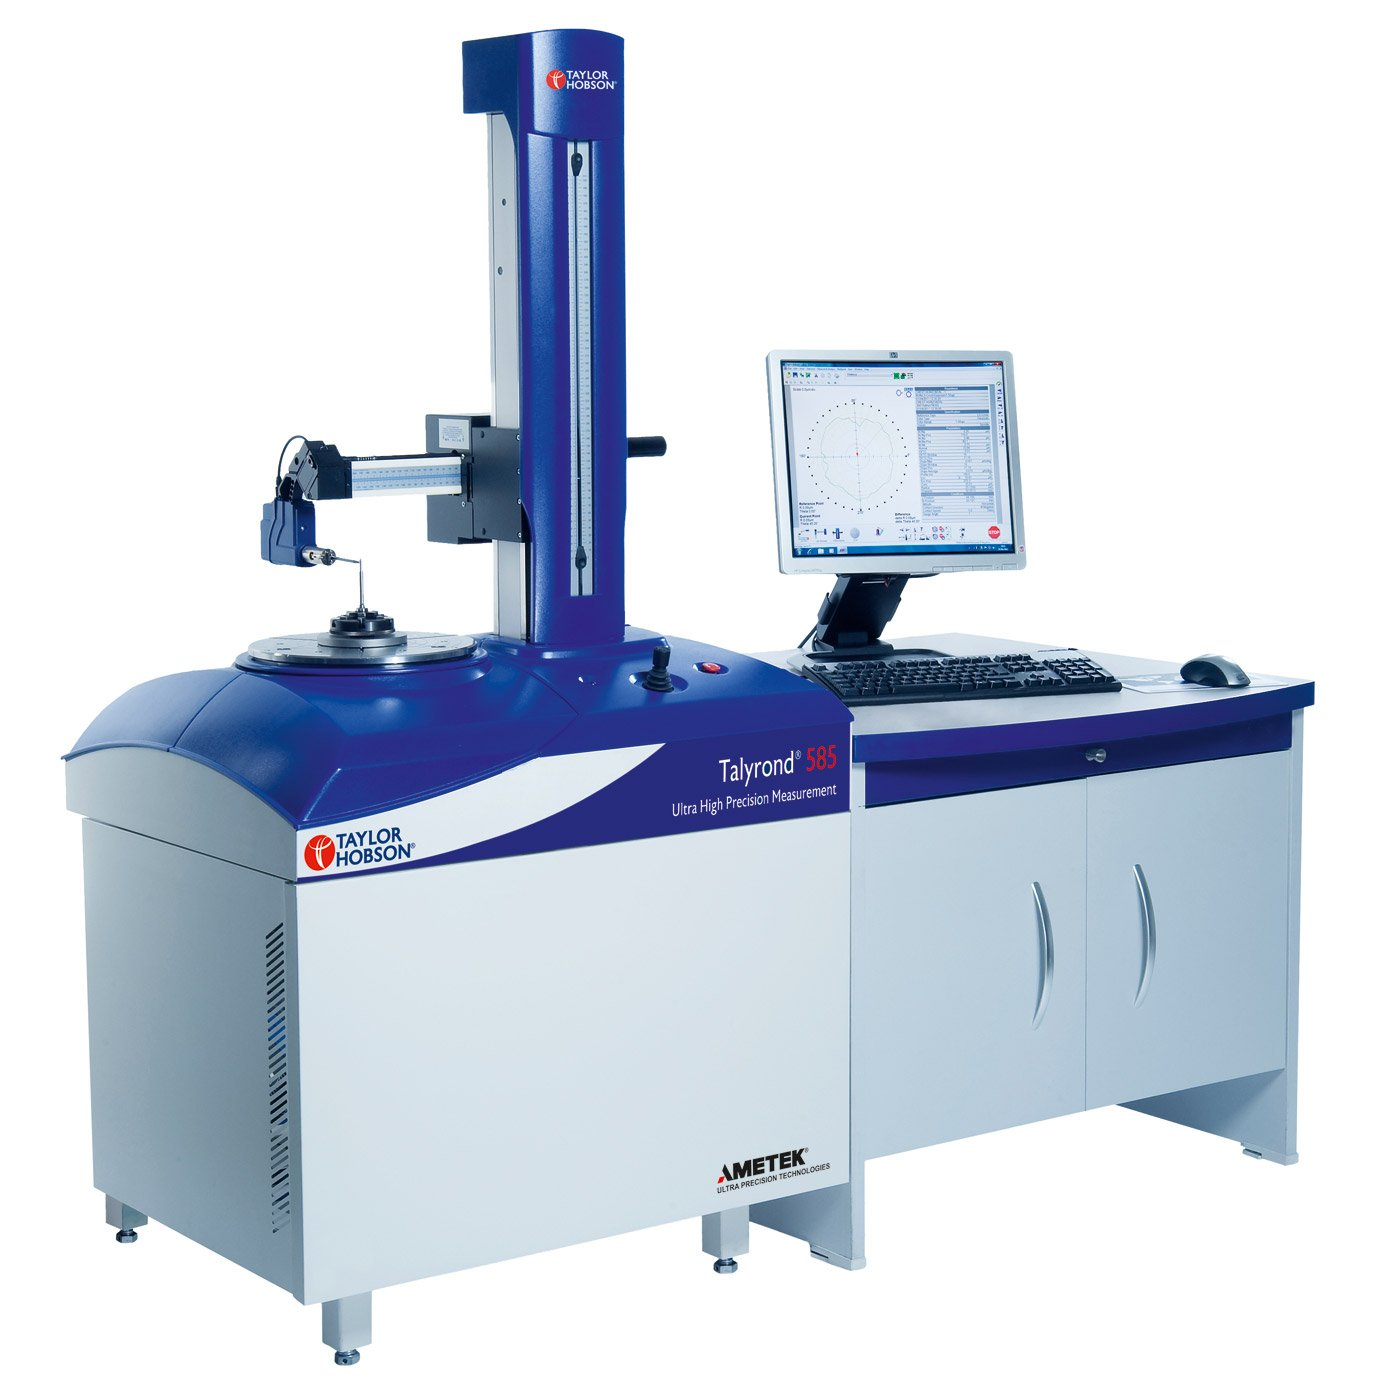 Talyrond 585H - fully automated roundness/cylindricity instrument